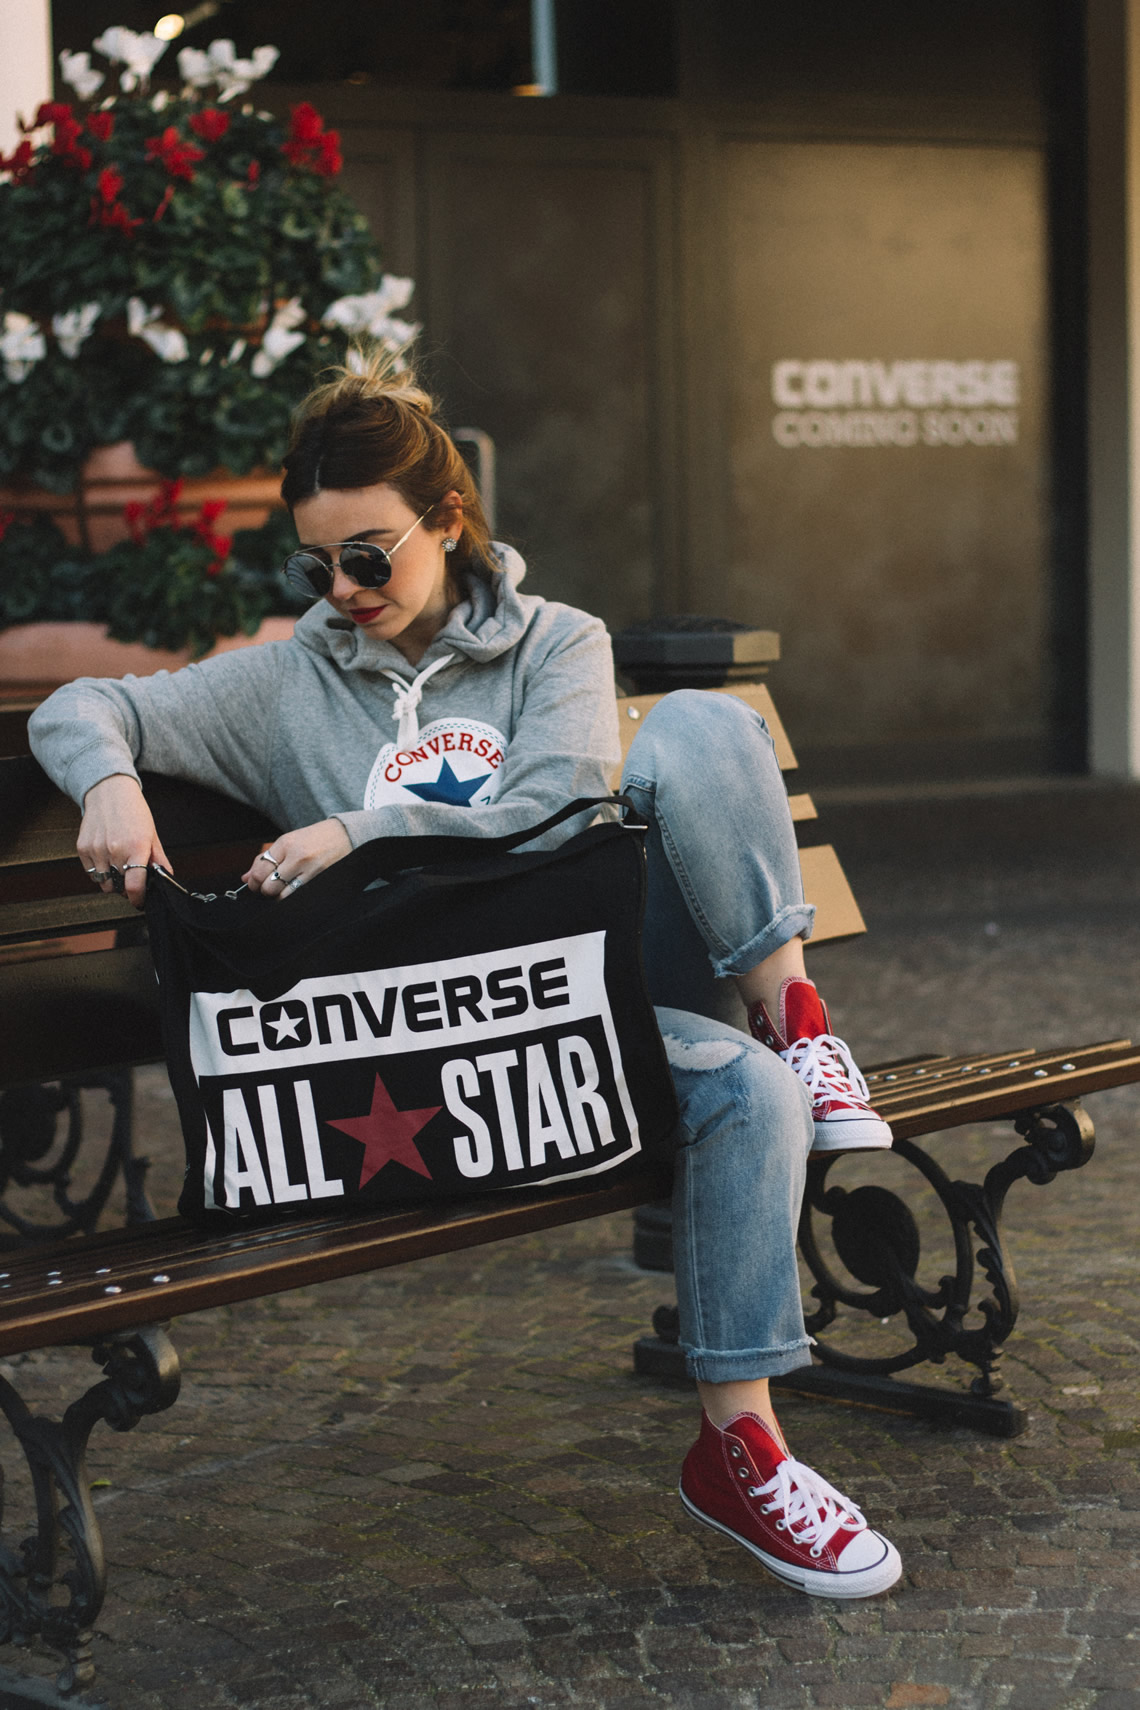 converse_apre_a_castel_romano_designer_outlet_dressing_and_toppings_01